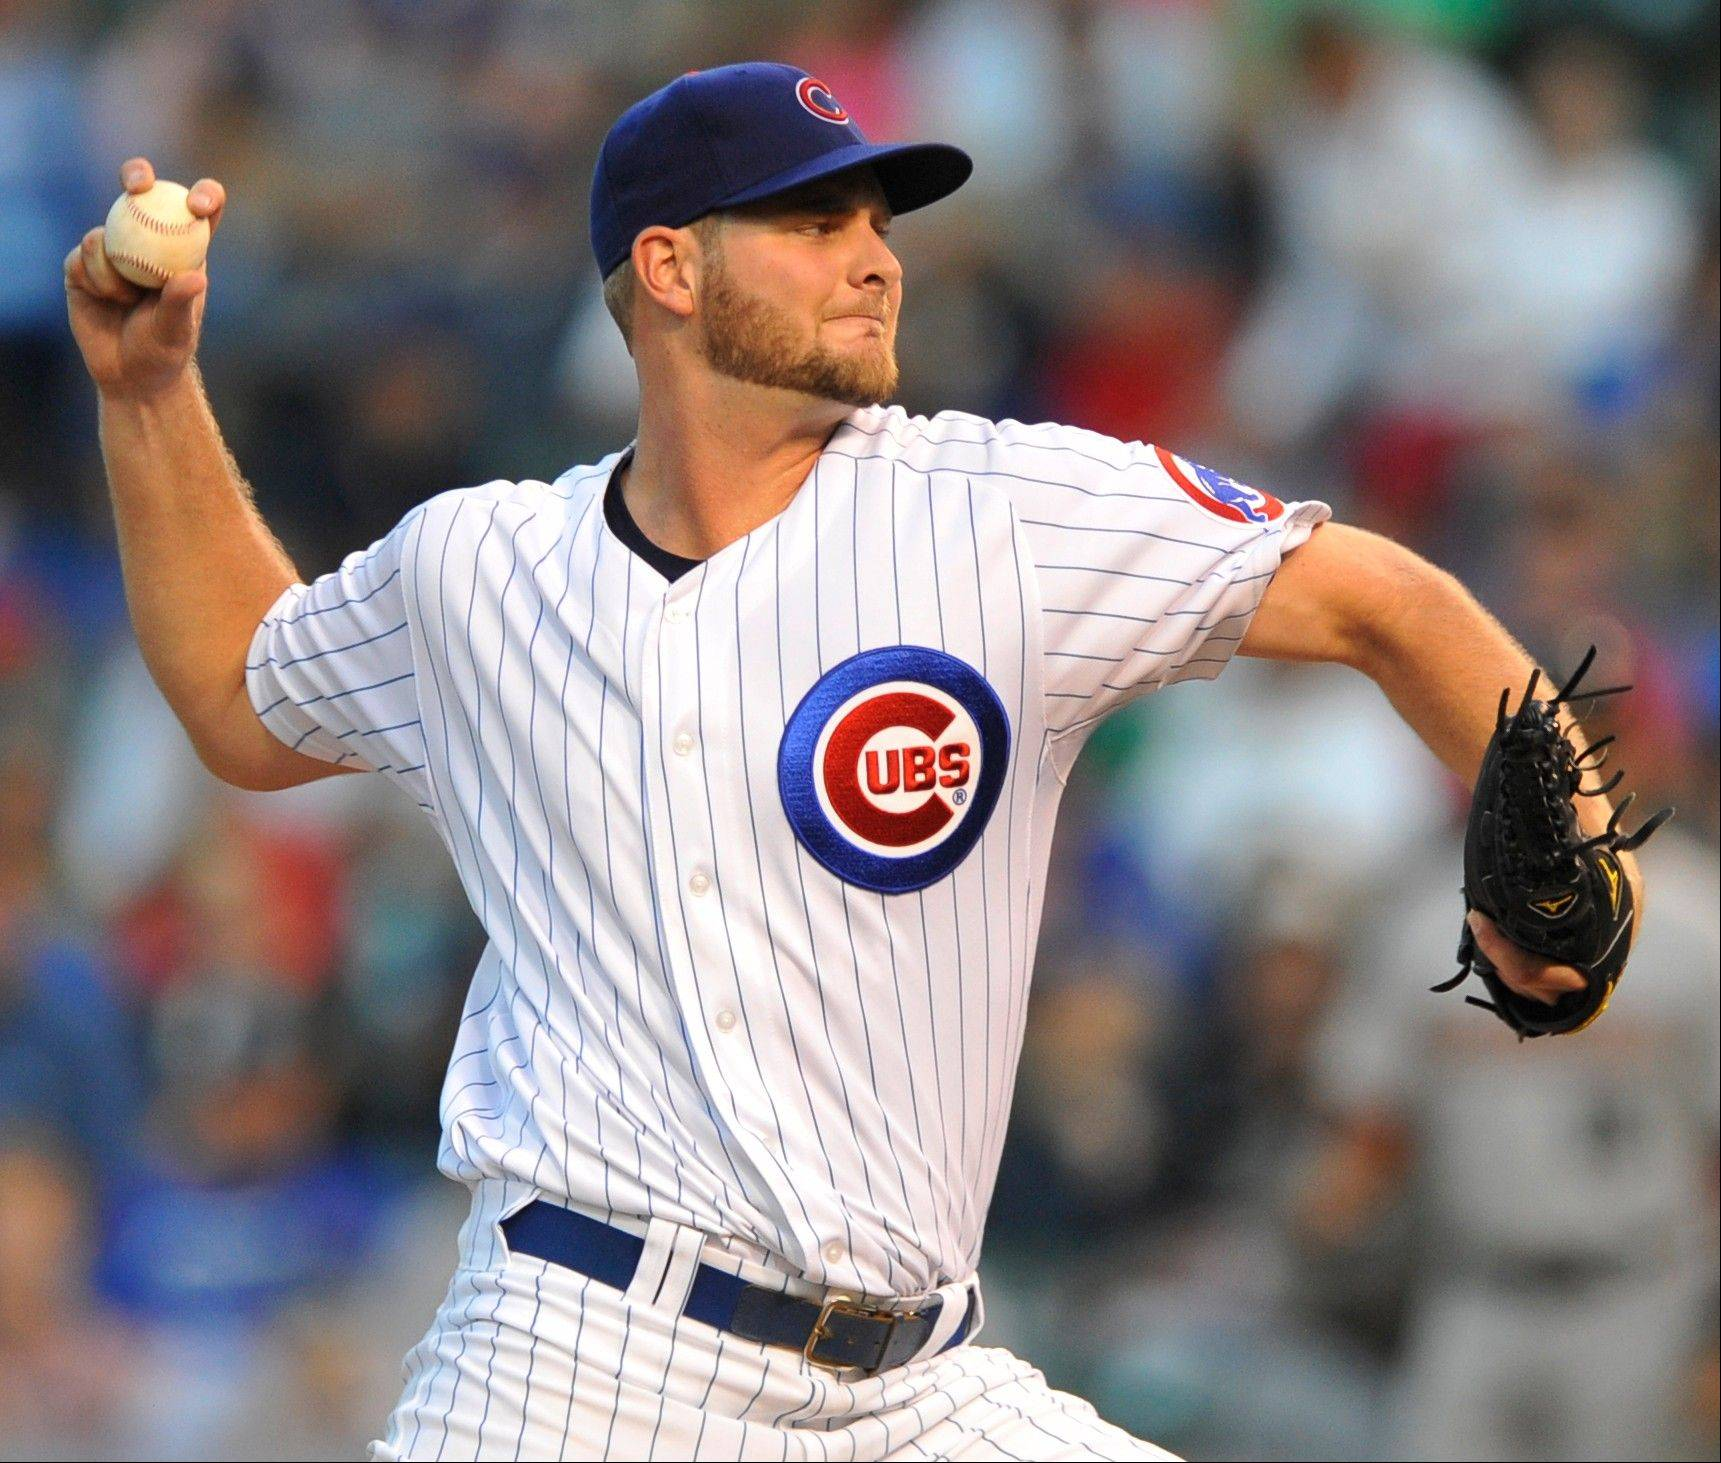 Cubs starter Chris Volstad dropped to 0-9 with Tuesday night's 10-1 loss to the Houston Astros at Wrigley Field.